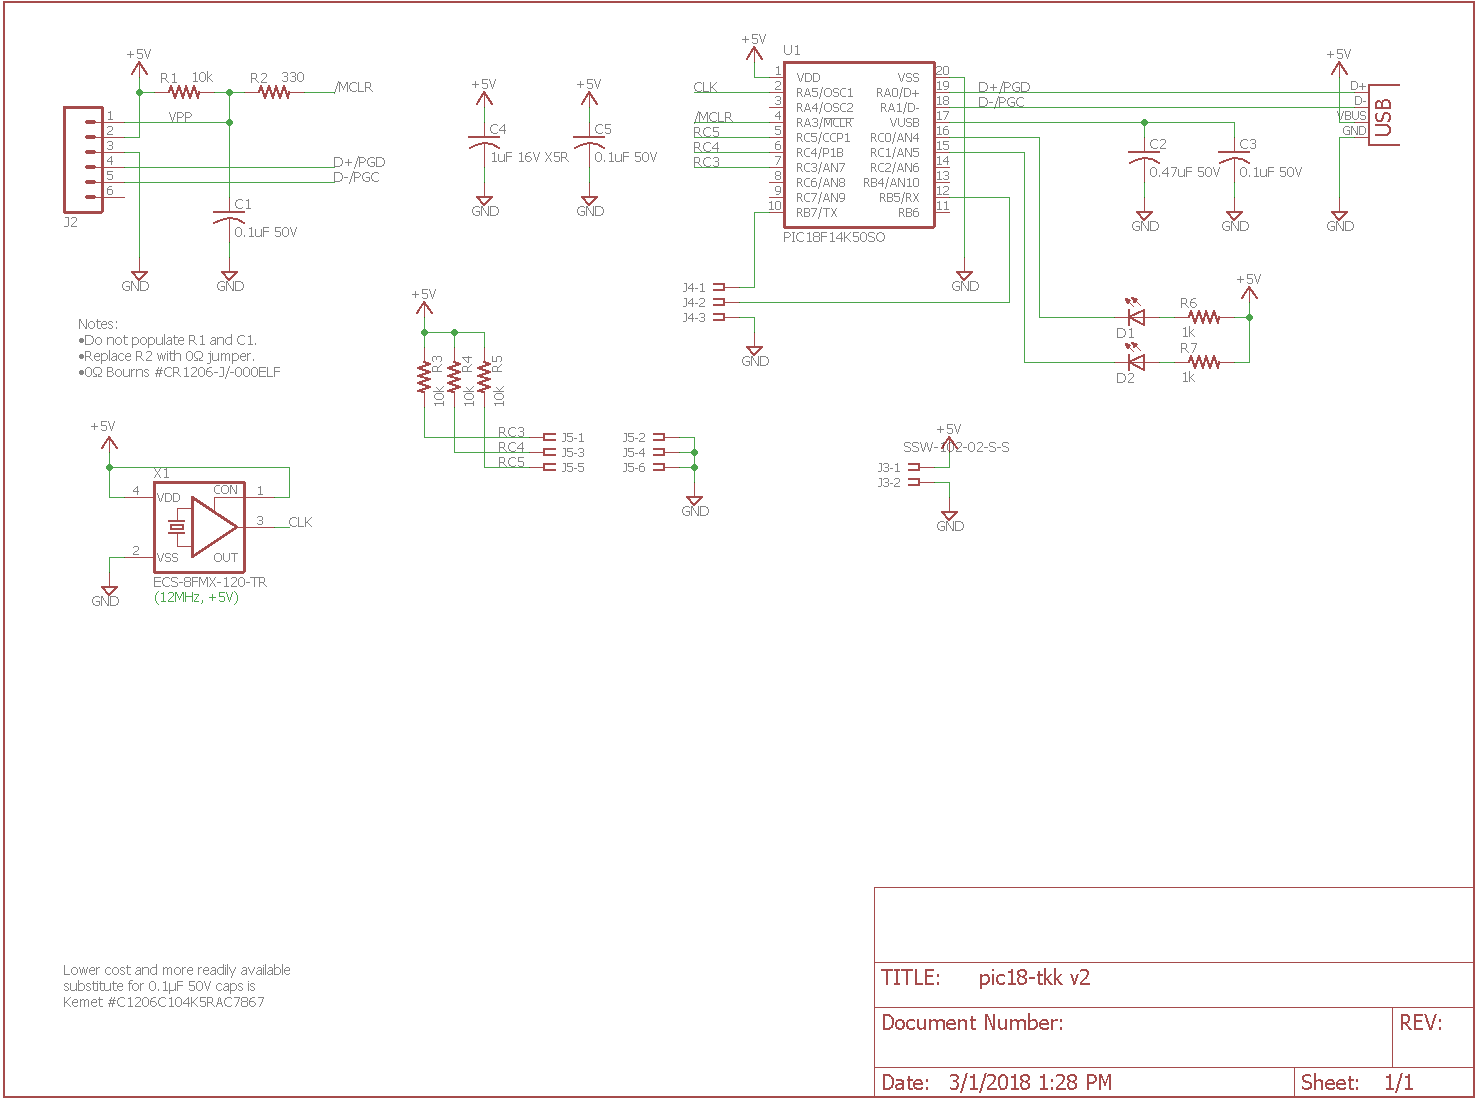 usb adapter, heat gun schematic, cpu schematic, usb laptop lamp, usb led laptop lights, microphone schematic, usb keyboard interface, ethernet cable schematic, wireless schematic, xbox 360 controller schematic, usb midi interface, multimeter schematic, bluetooth schematic, hdmi to rca schematic, mouse schematic, tv schematic, speakers schematic, voltmeter schematic, usb diagram, camera schematic, on usb keyboard schematic